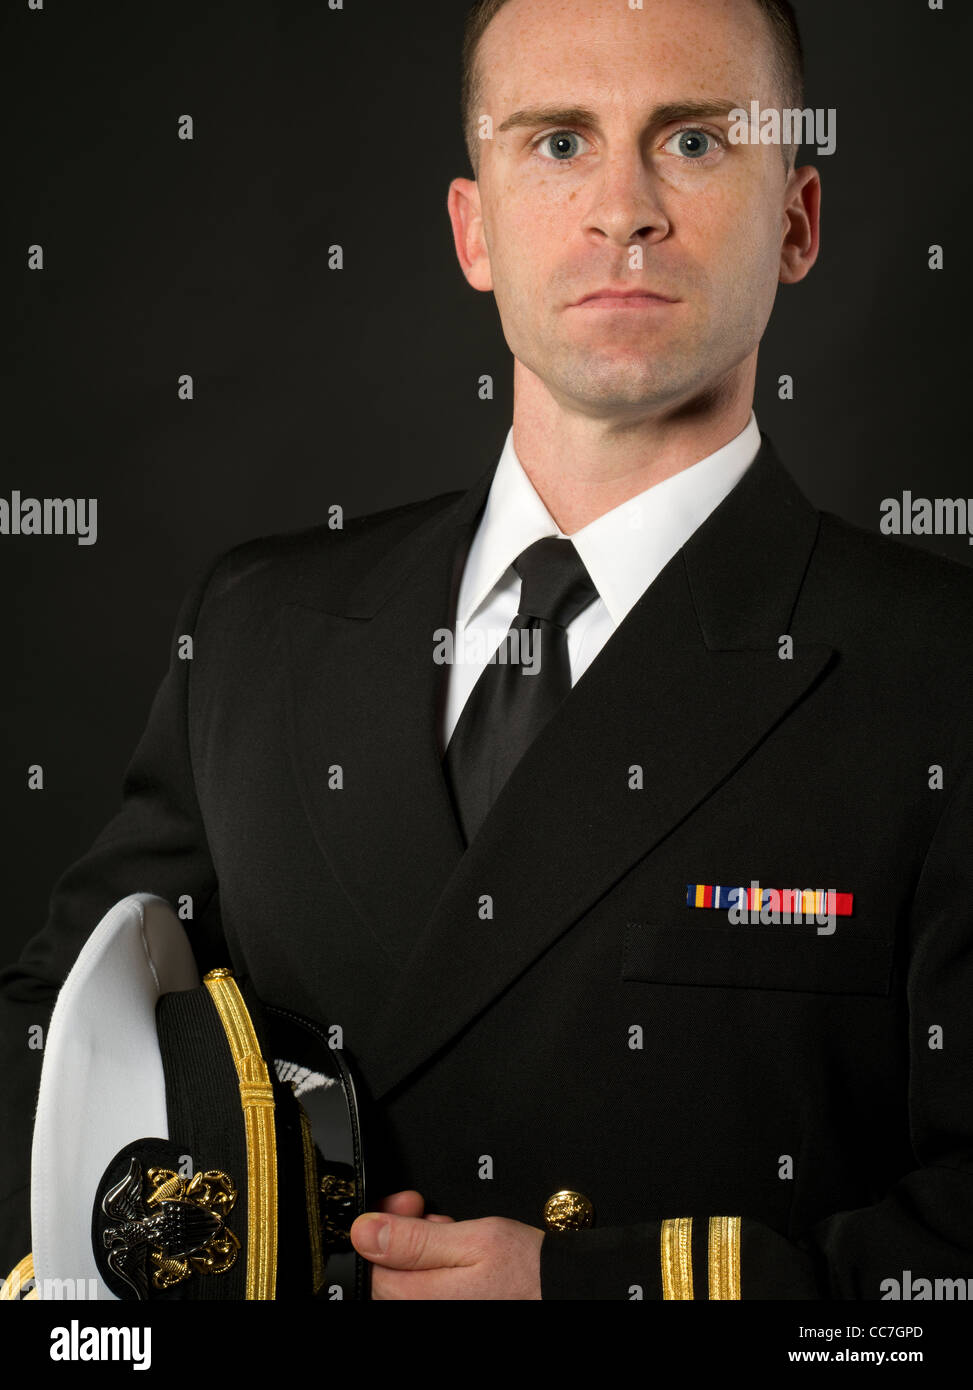 United states navy uniforms